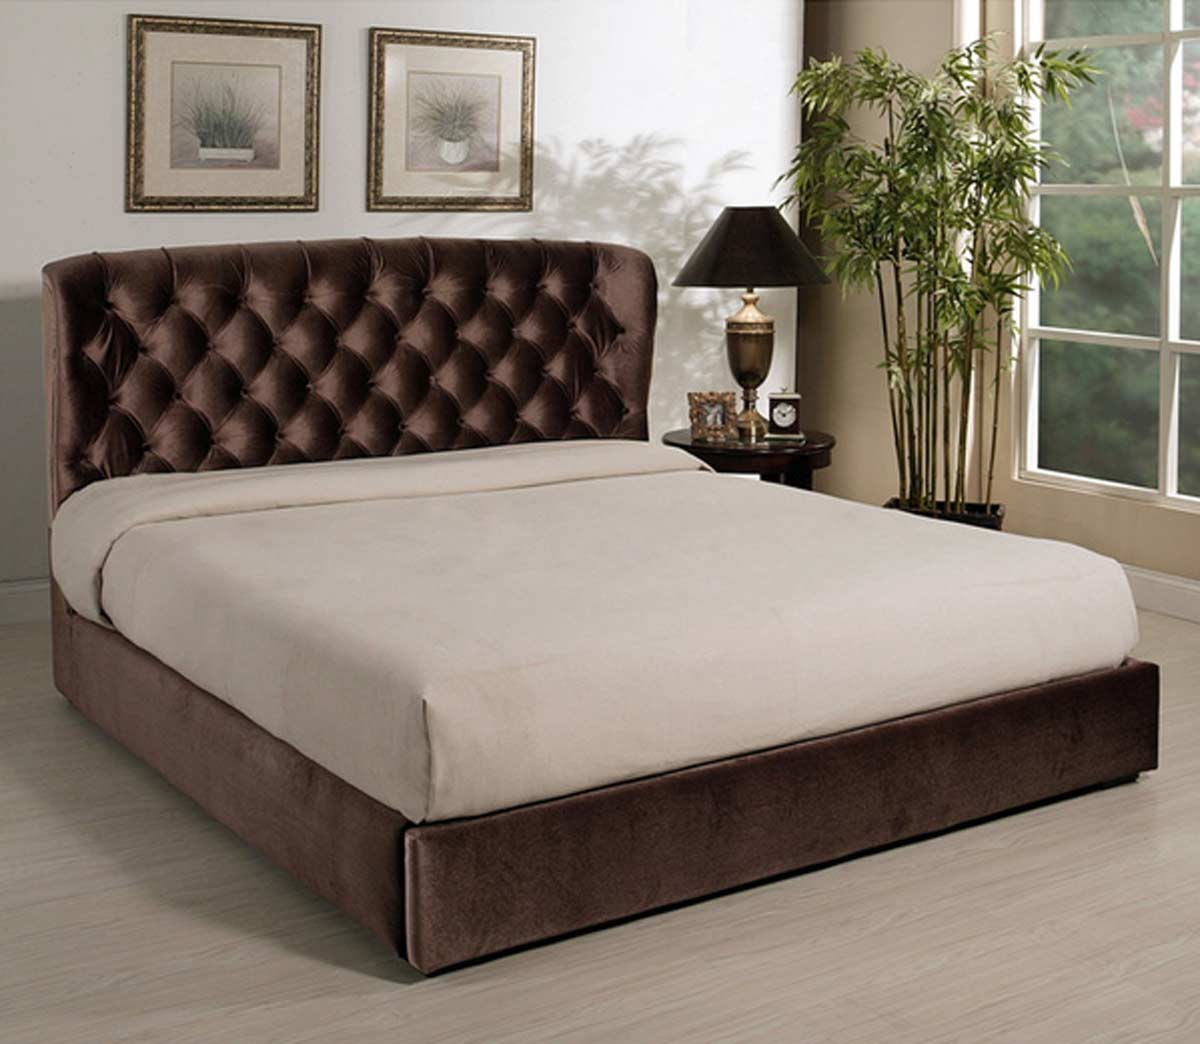 Abbyson Living Presidio Chocolate Tufted Upholstered Bed